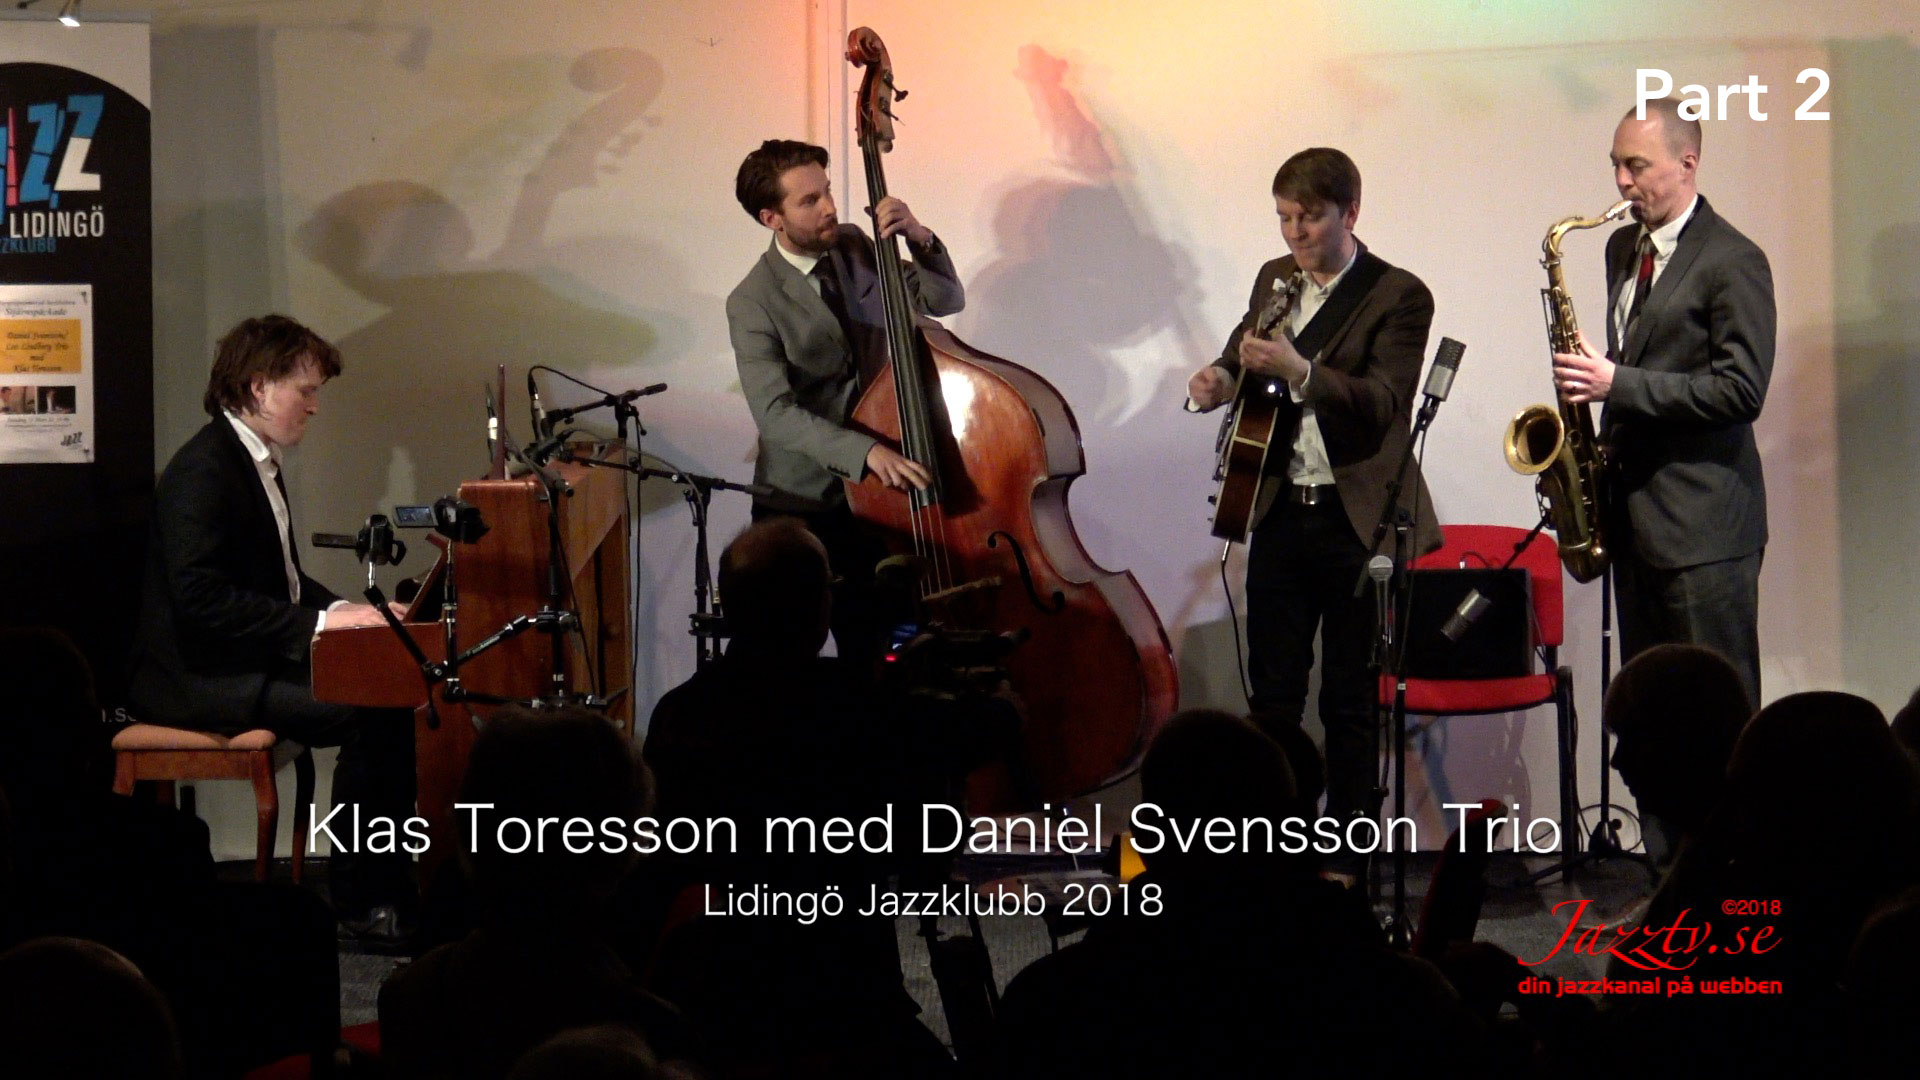 Klas Toresson with Daniel Svensson trio